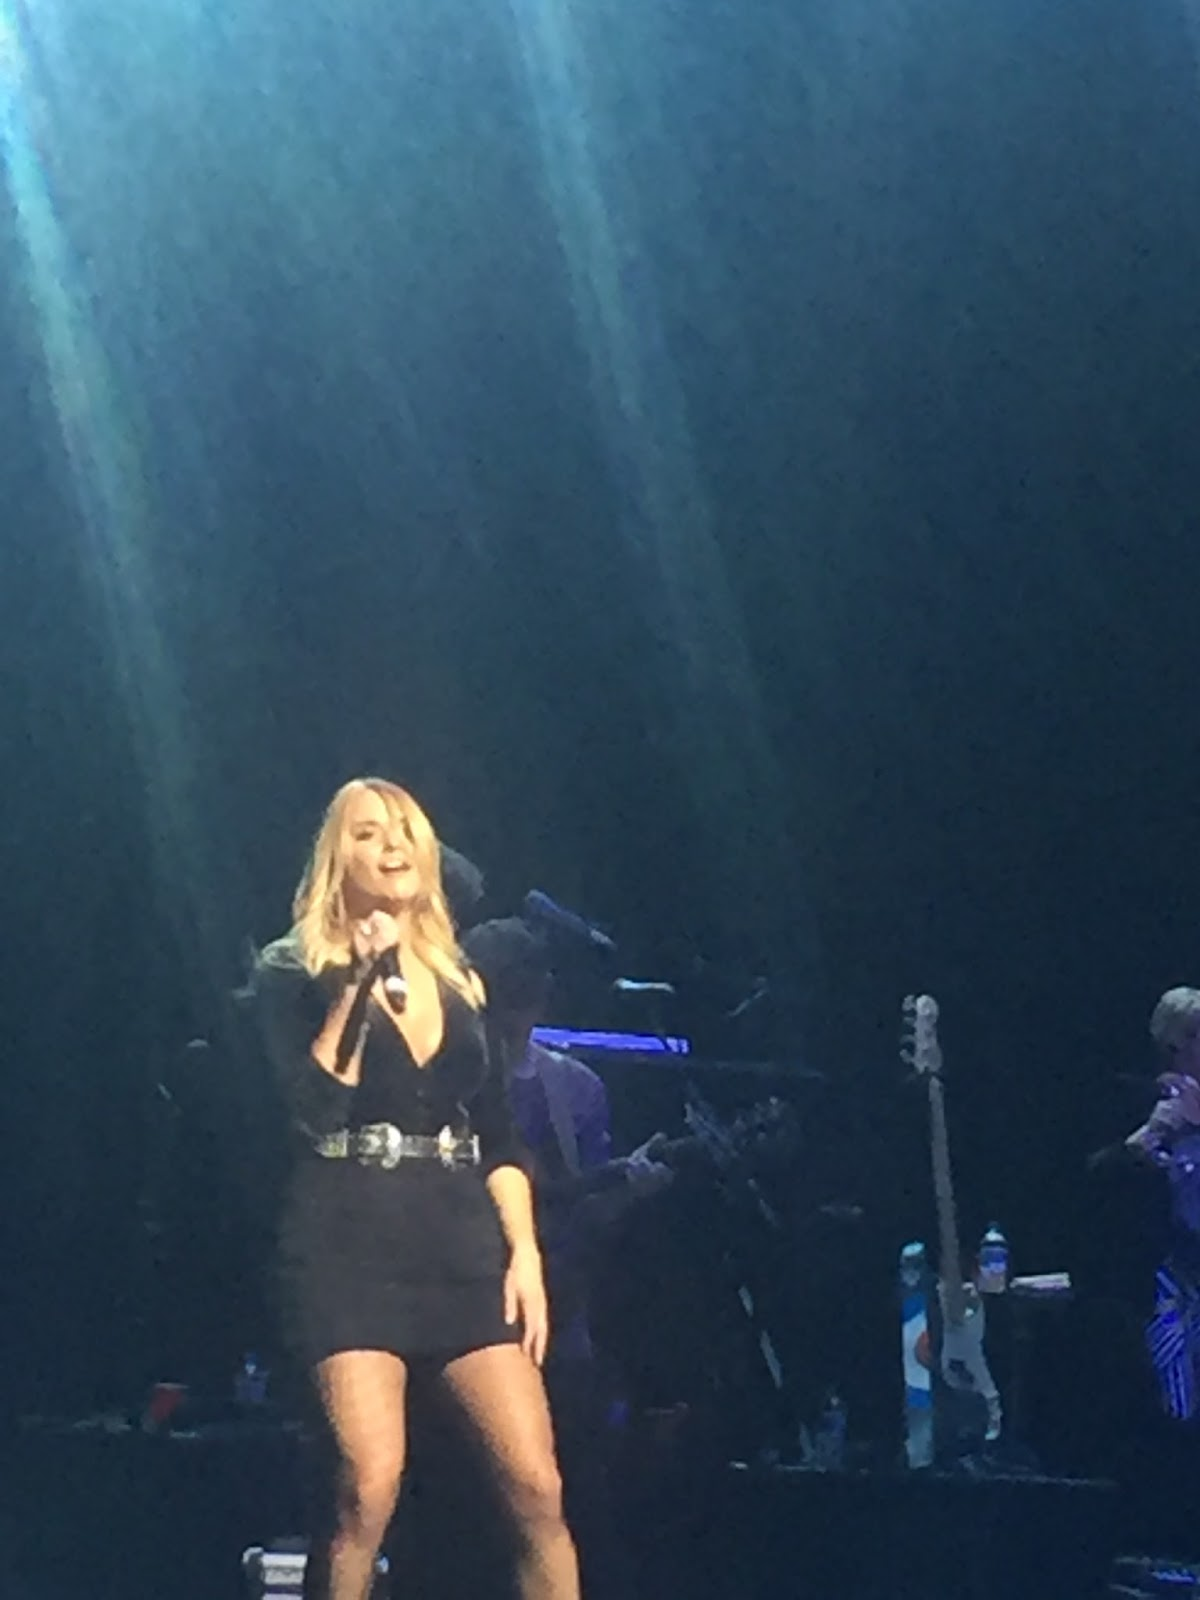 Three chords and the truth uk miranda lambert barclaycard arena the house that built me and tin man the latter beginning a two song encore segment brought a tear to many an eye hexwebz Gallery